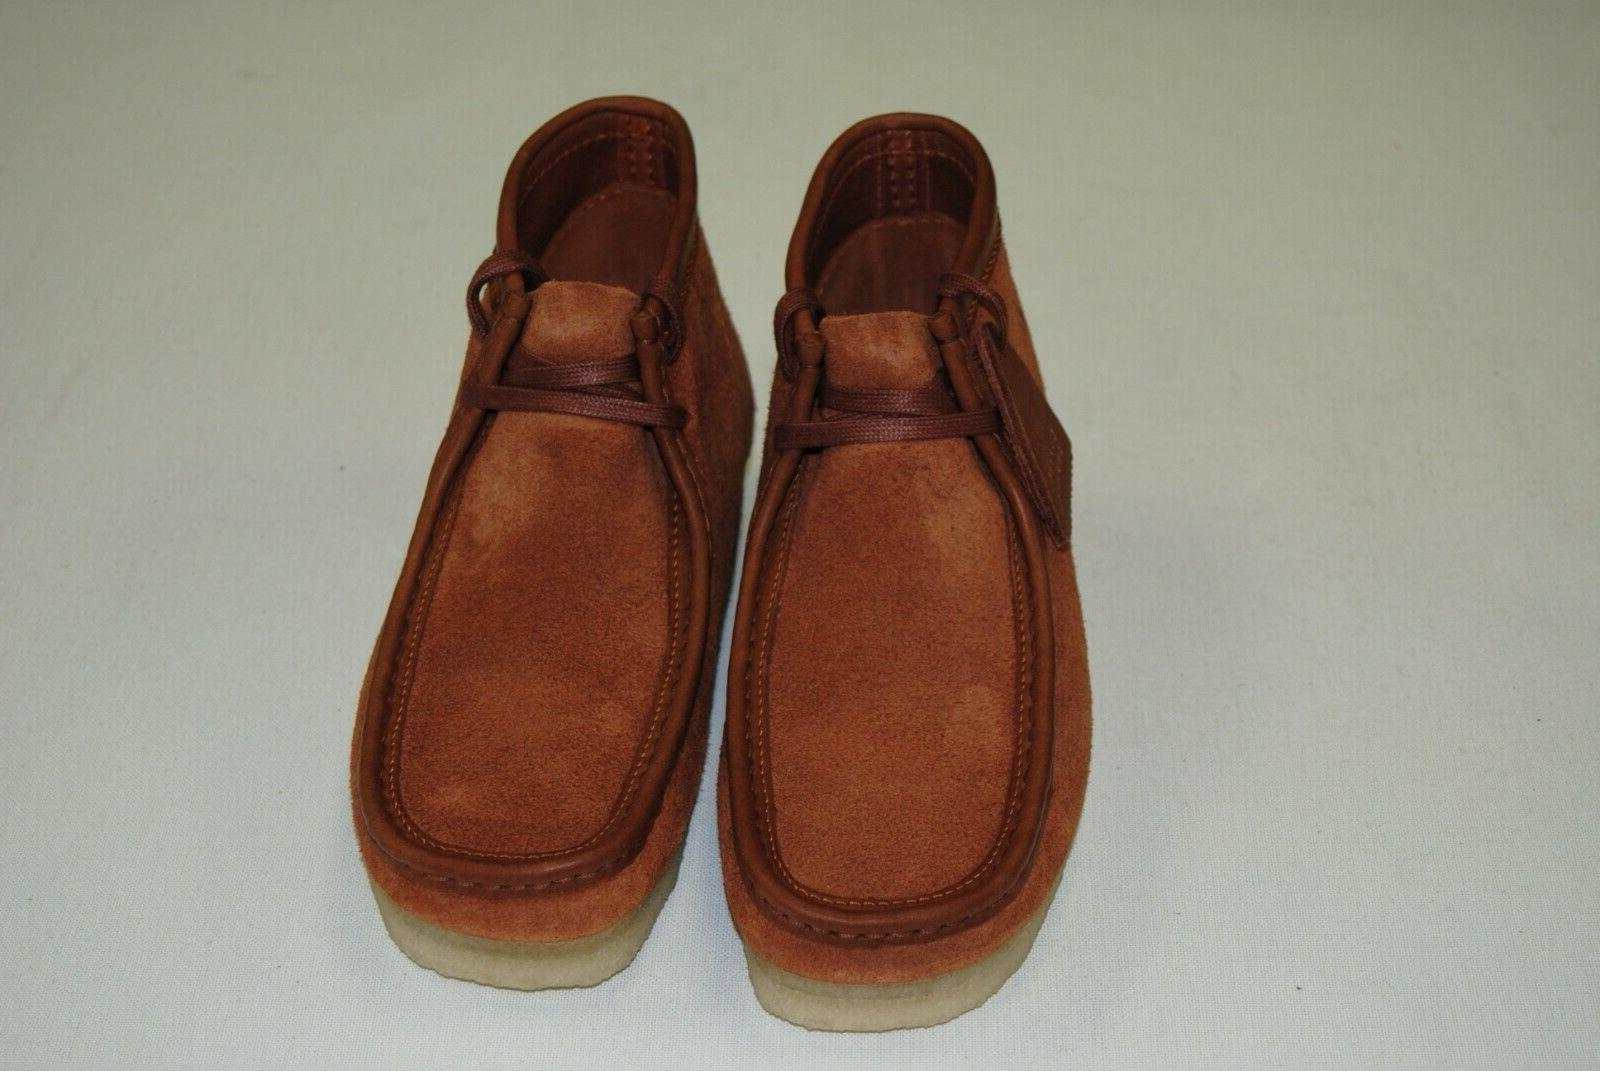 NEW MEN'S CLARKS WALLABEE HAIRY SUEDE CL22